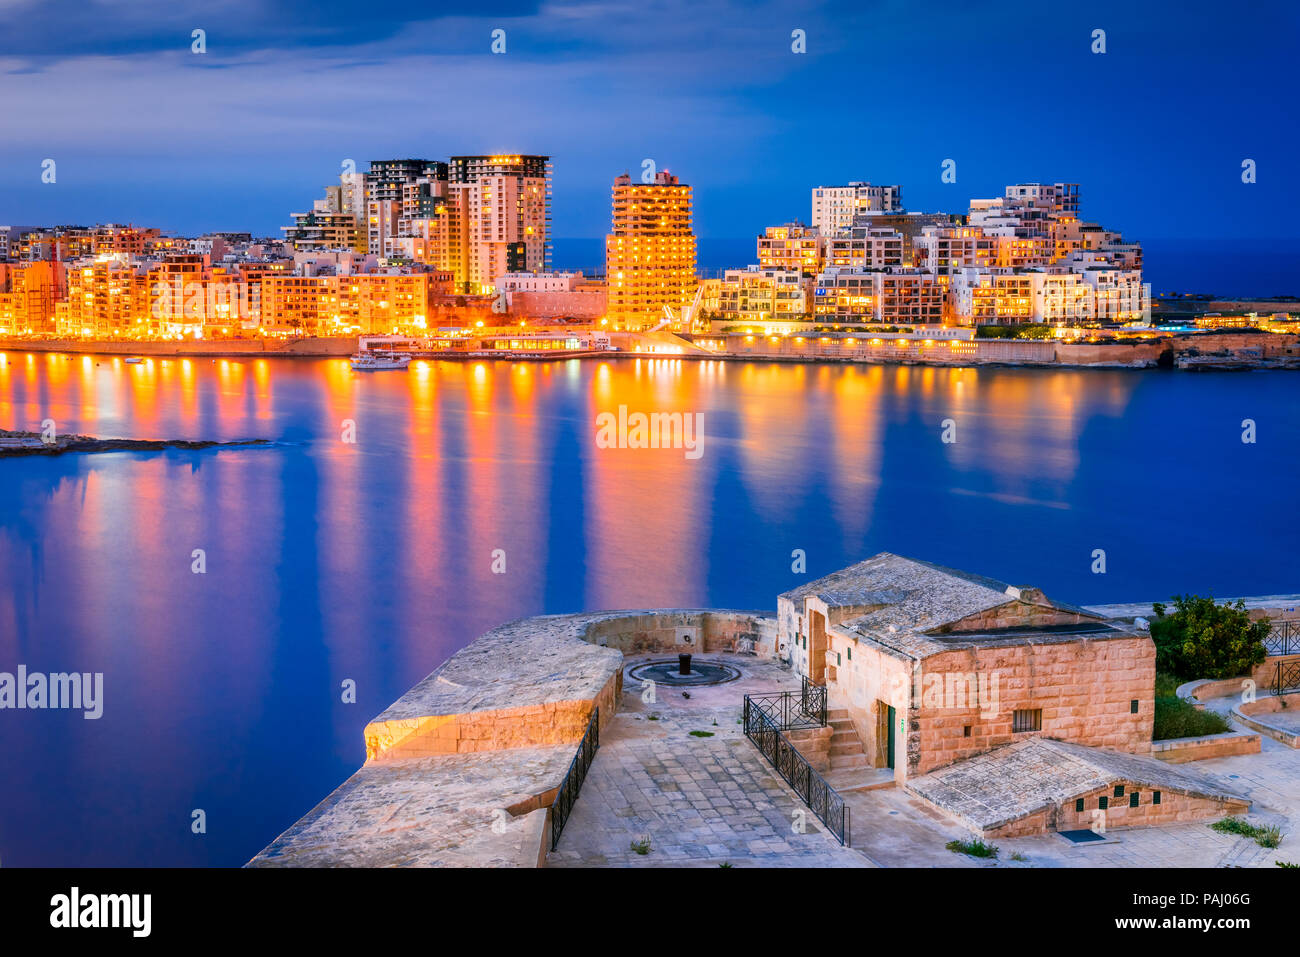 Malta nightview of Marsamxmett Harbour and Silema city, Valletta. Stock Photo